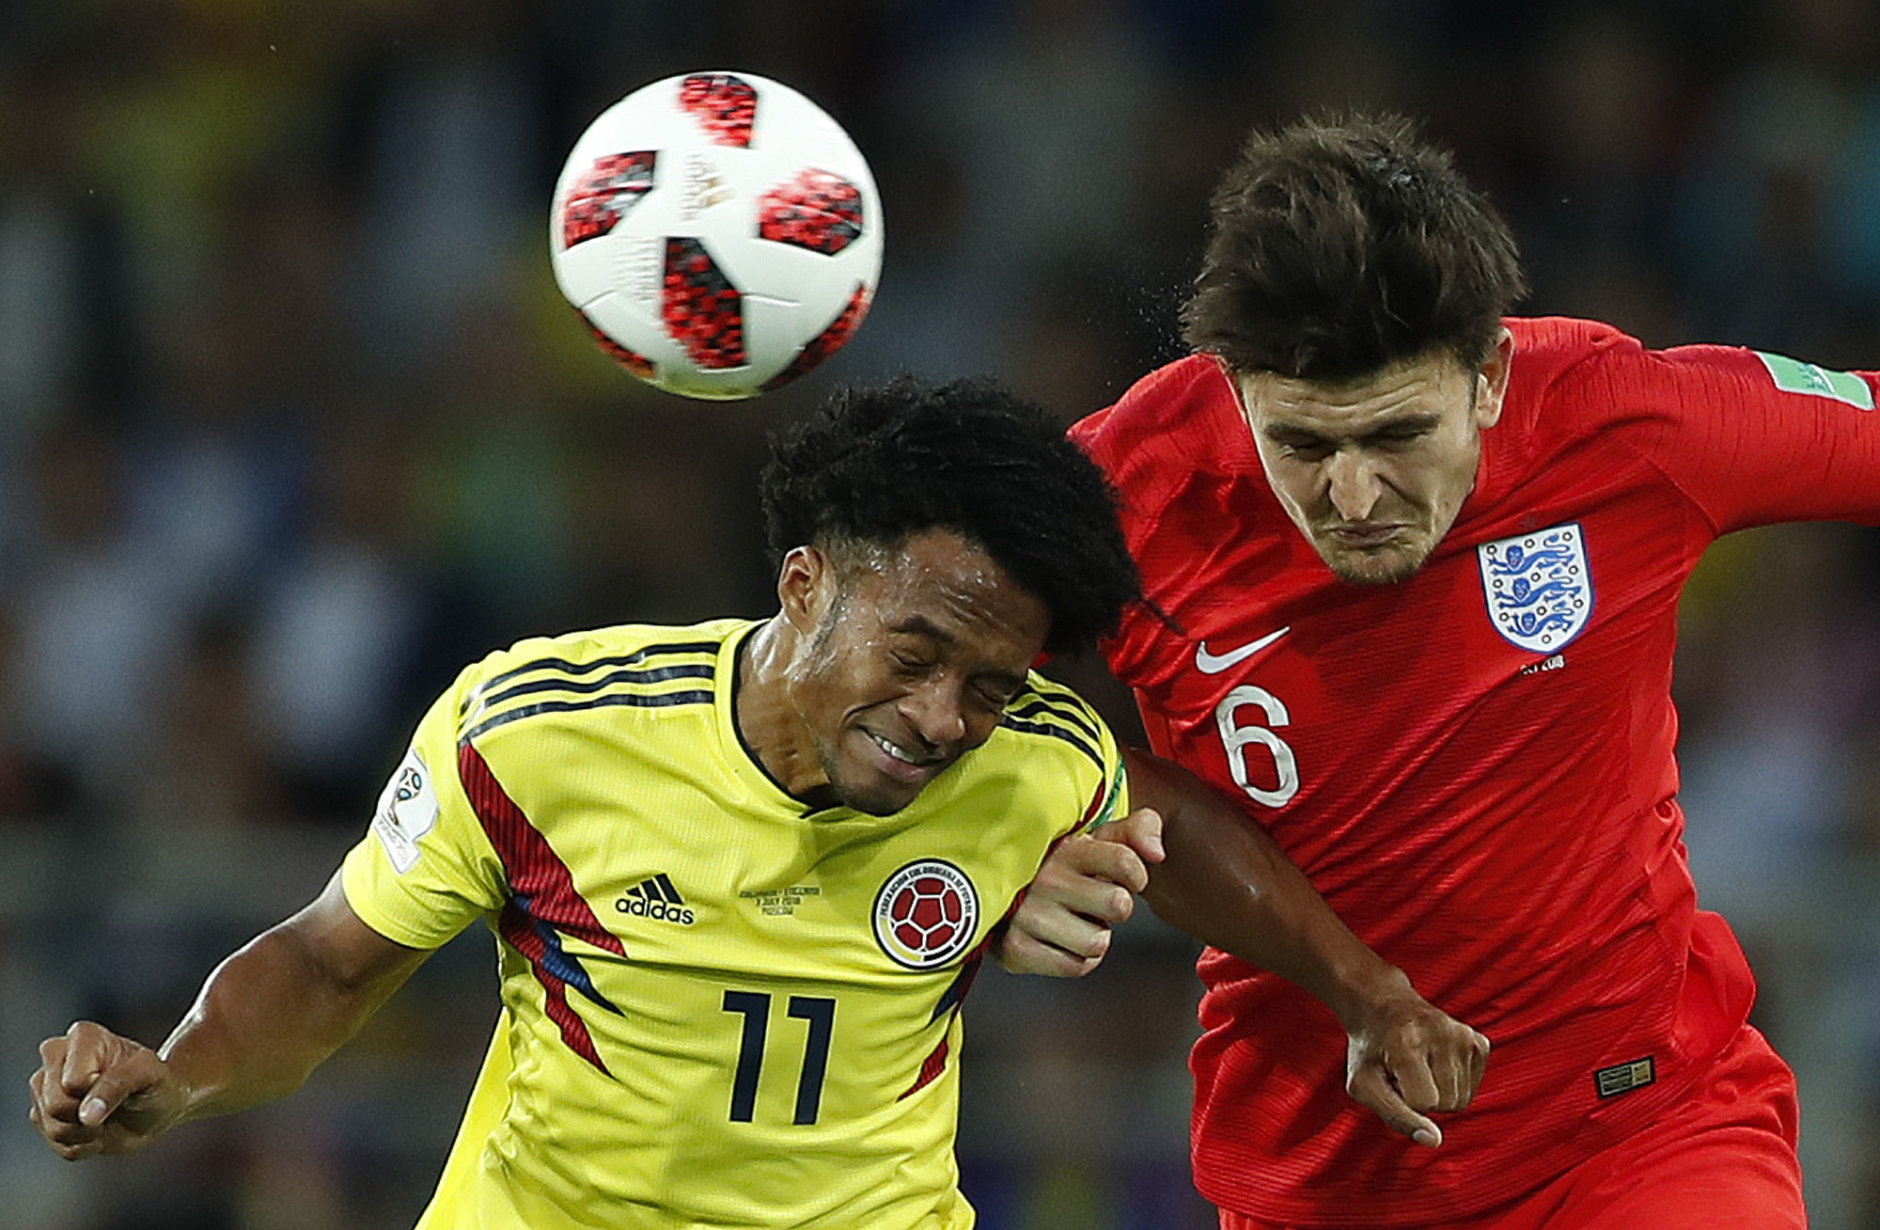 Colombia's Juan Cuadrado, left, and England's Harry Maguire challenge for the ball during the round of 16 match between Colombia and England at the 2018 soccer World Cup in the Spartak Stadium, in Moscow, Russia, Tuesday, July 3, 2018. (AP Photo/Alastair Grant)